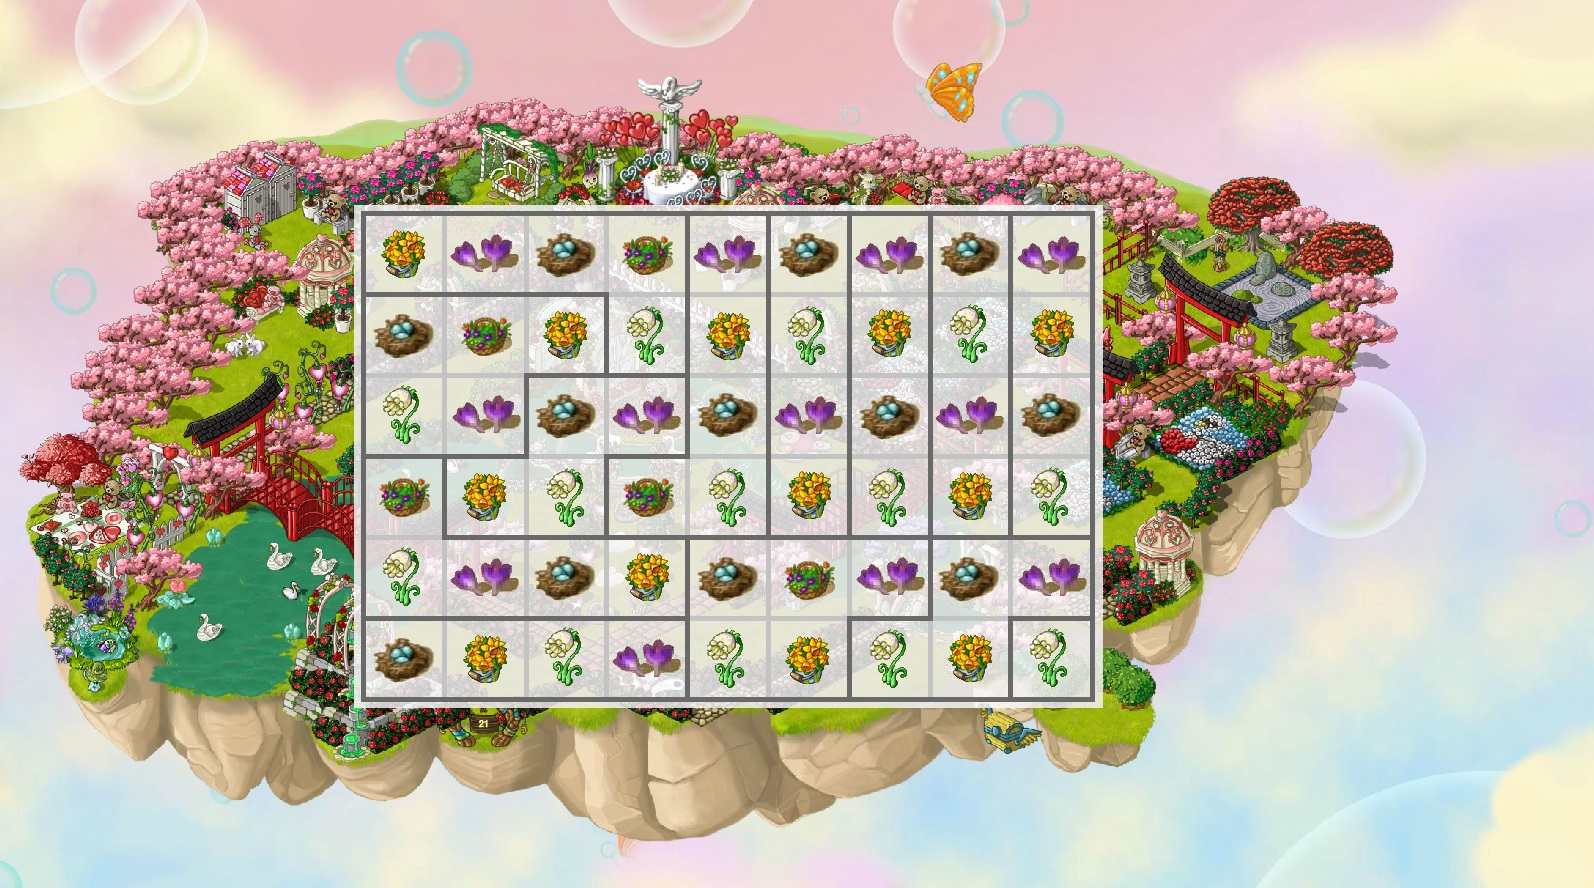 Name:  Gift Box Puzzler - Welcoming Spring 2019 - answer.jpg Views: 13 Size:  537.3 KB